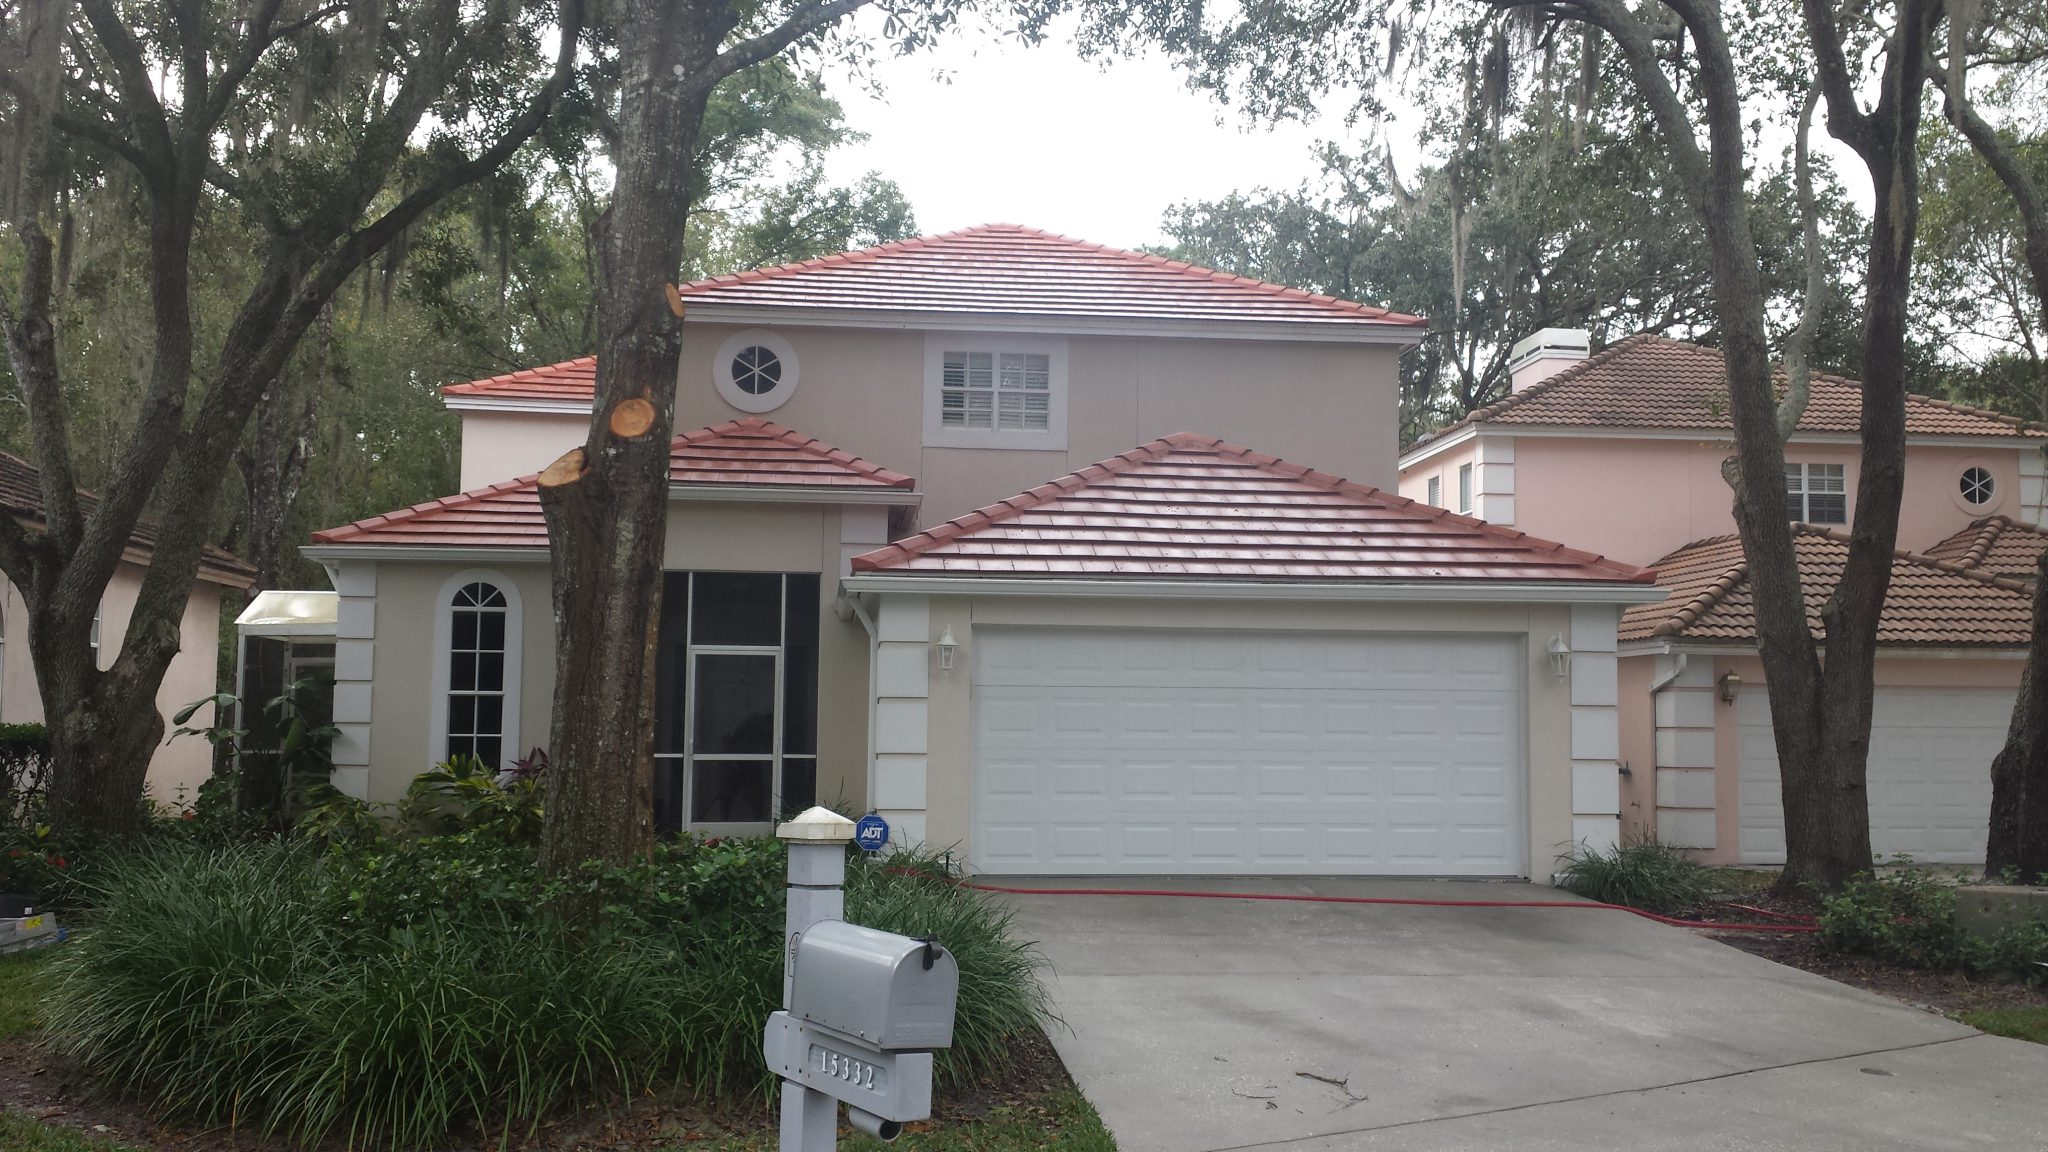 Soft Wash Roof Cleaning Tampa Apple Roof Cleaning Tampa